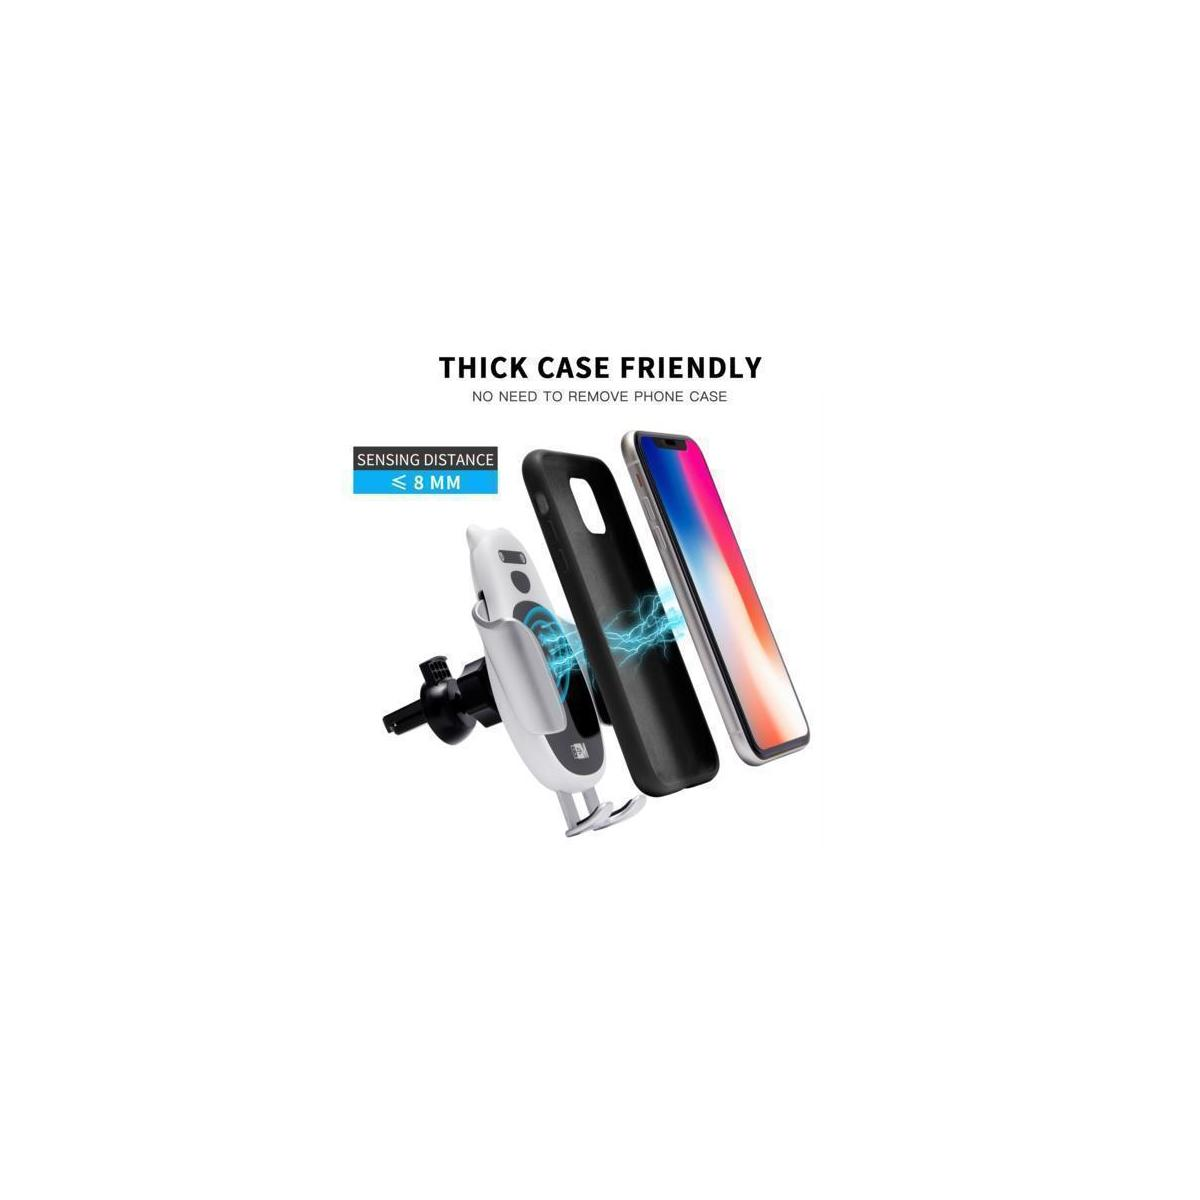 8M Wireless Car Charger Mount Auto Clamping I Bonus QC 3.0 Fast Car Charger Head I Qi Wireless Charger Car Mount Fast Charging Car Charger 15W I Wireless Phone Charger for Car